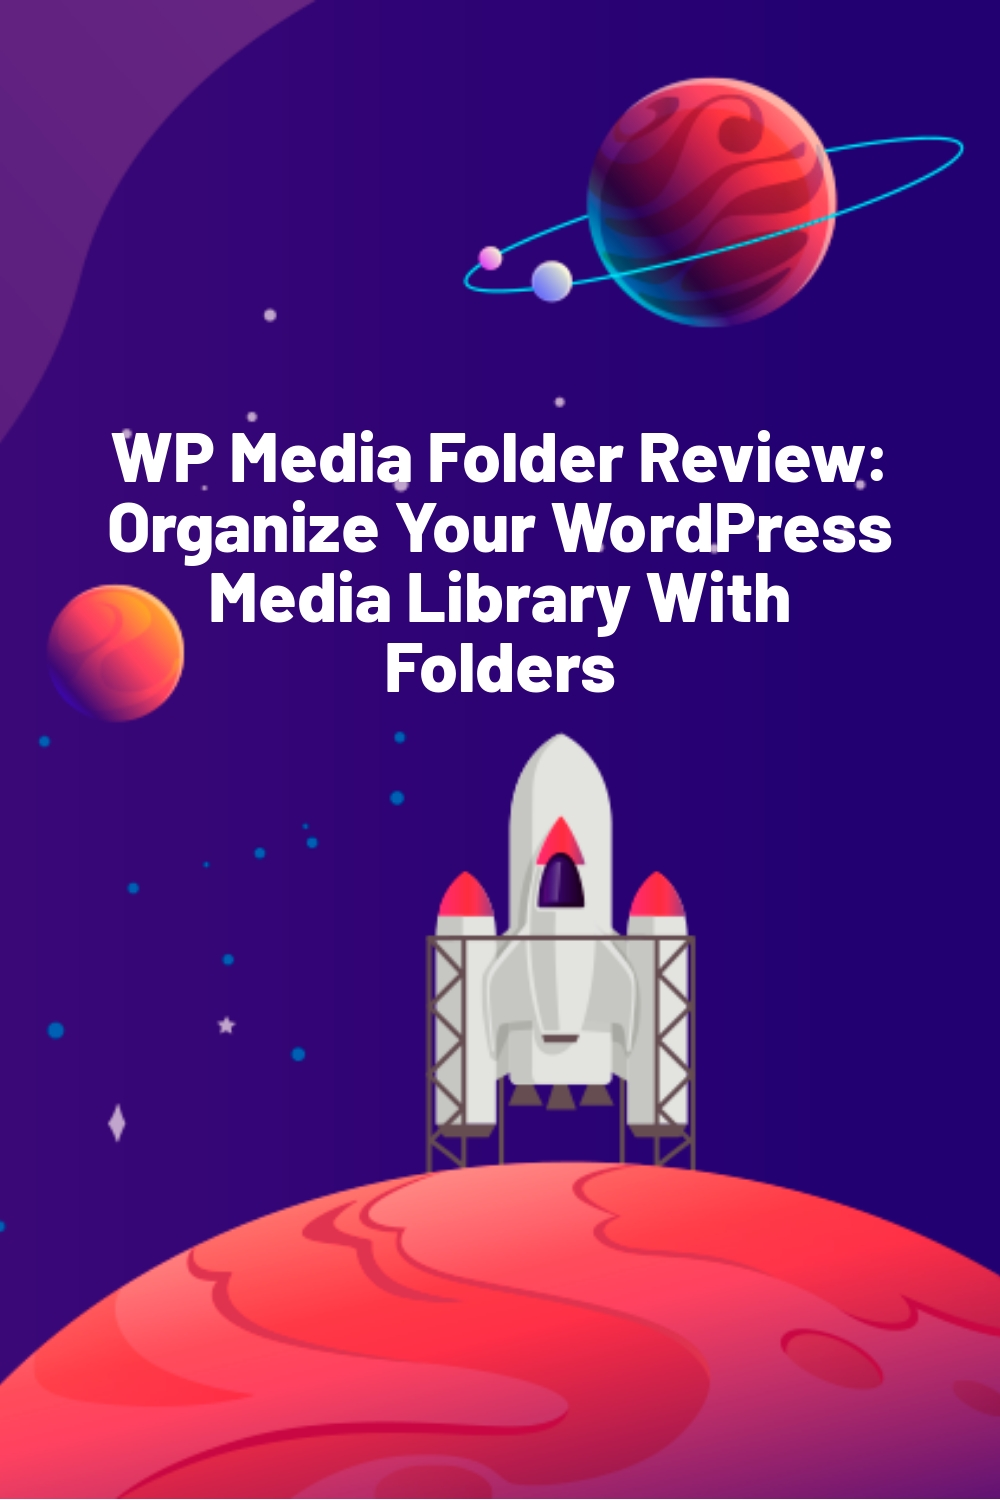 WP Media Folder Review: Organize Your WordPress Media Library With Folders